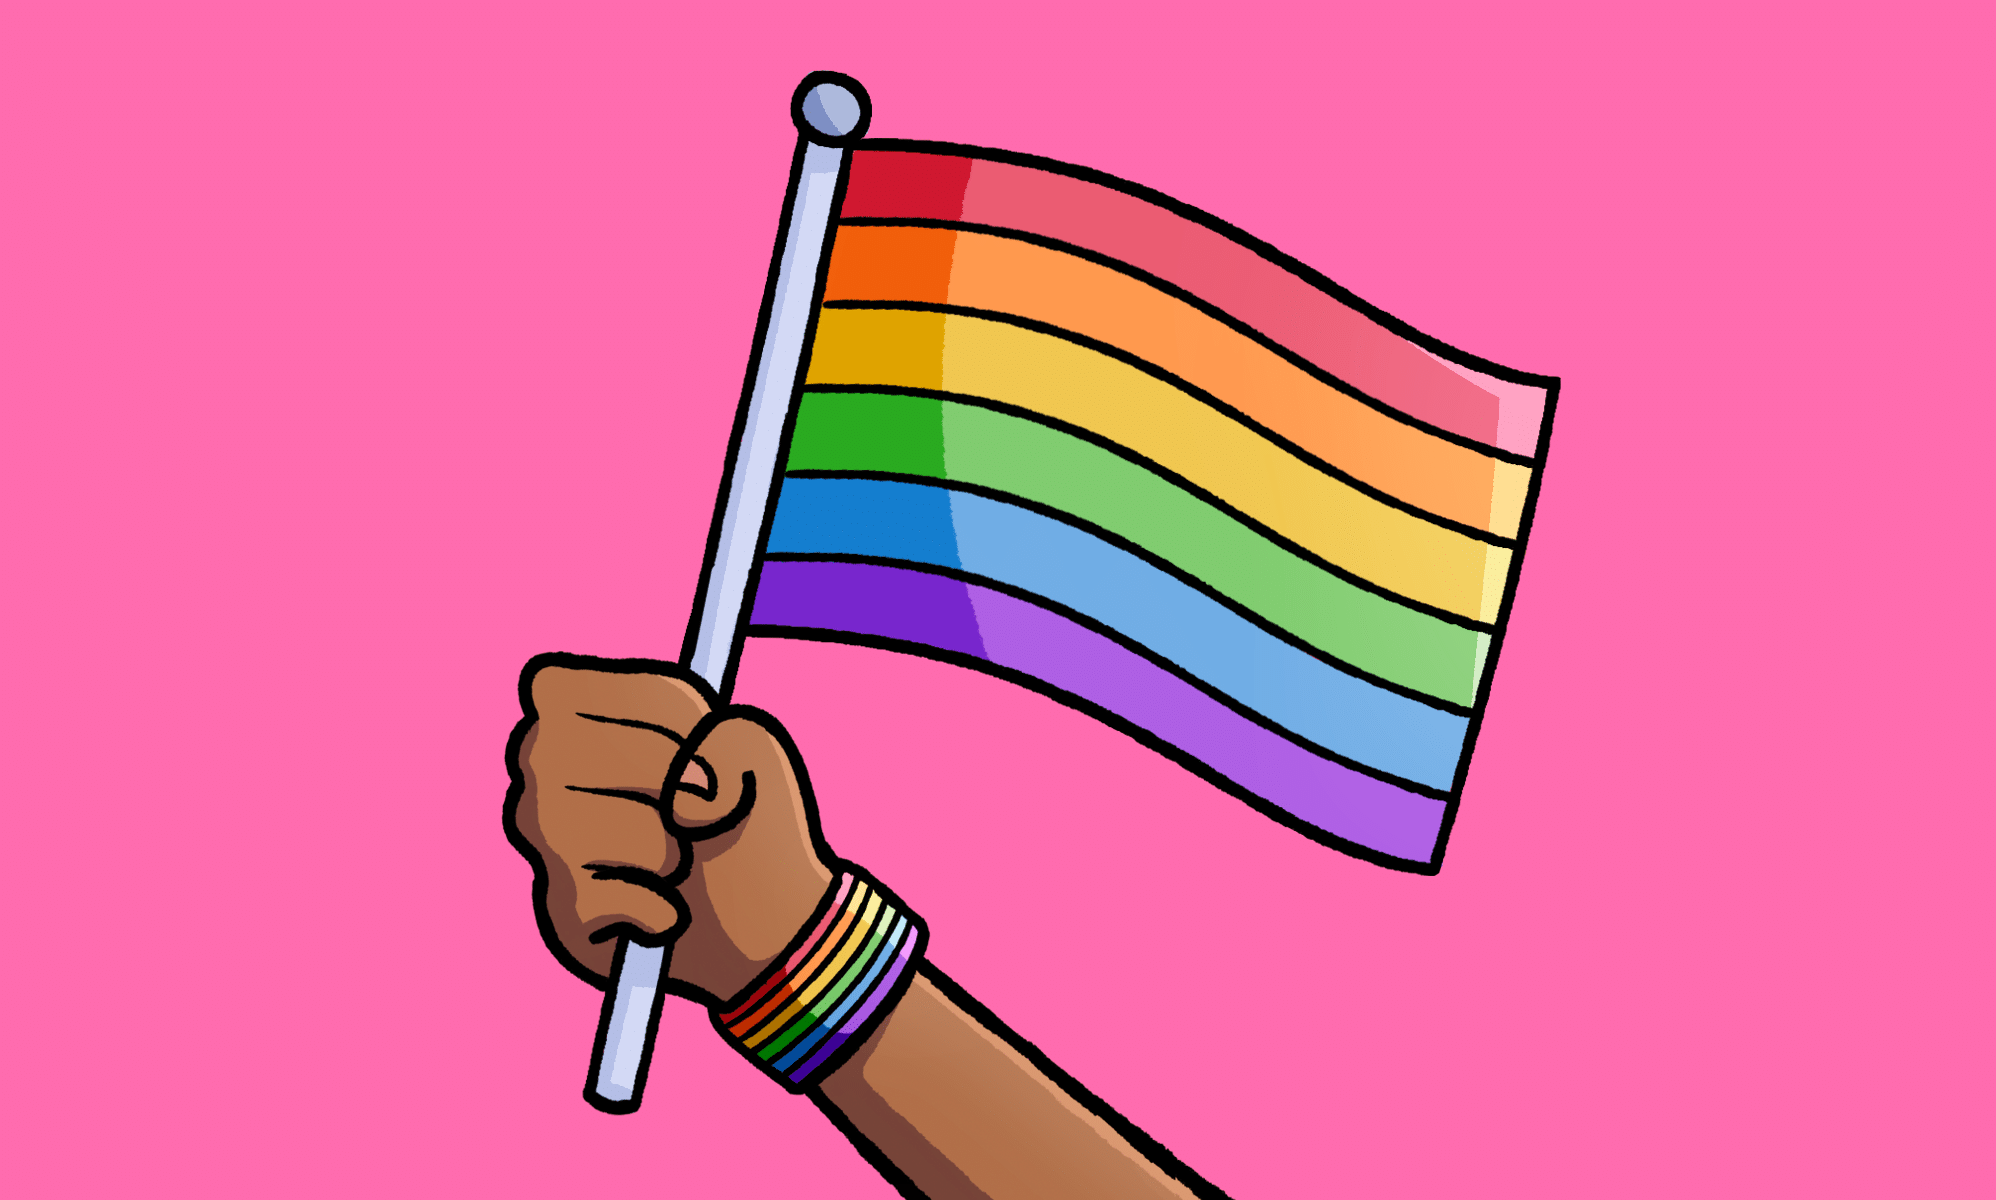 Does being LGBT hurt your chances of becoming an MP?